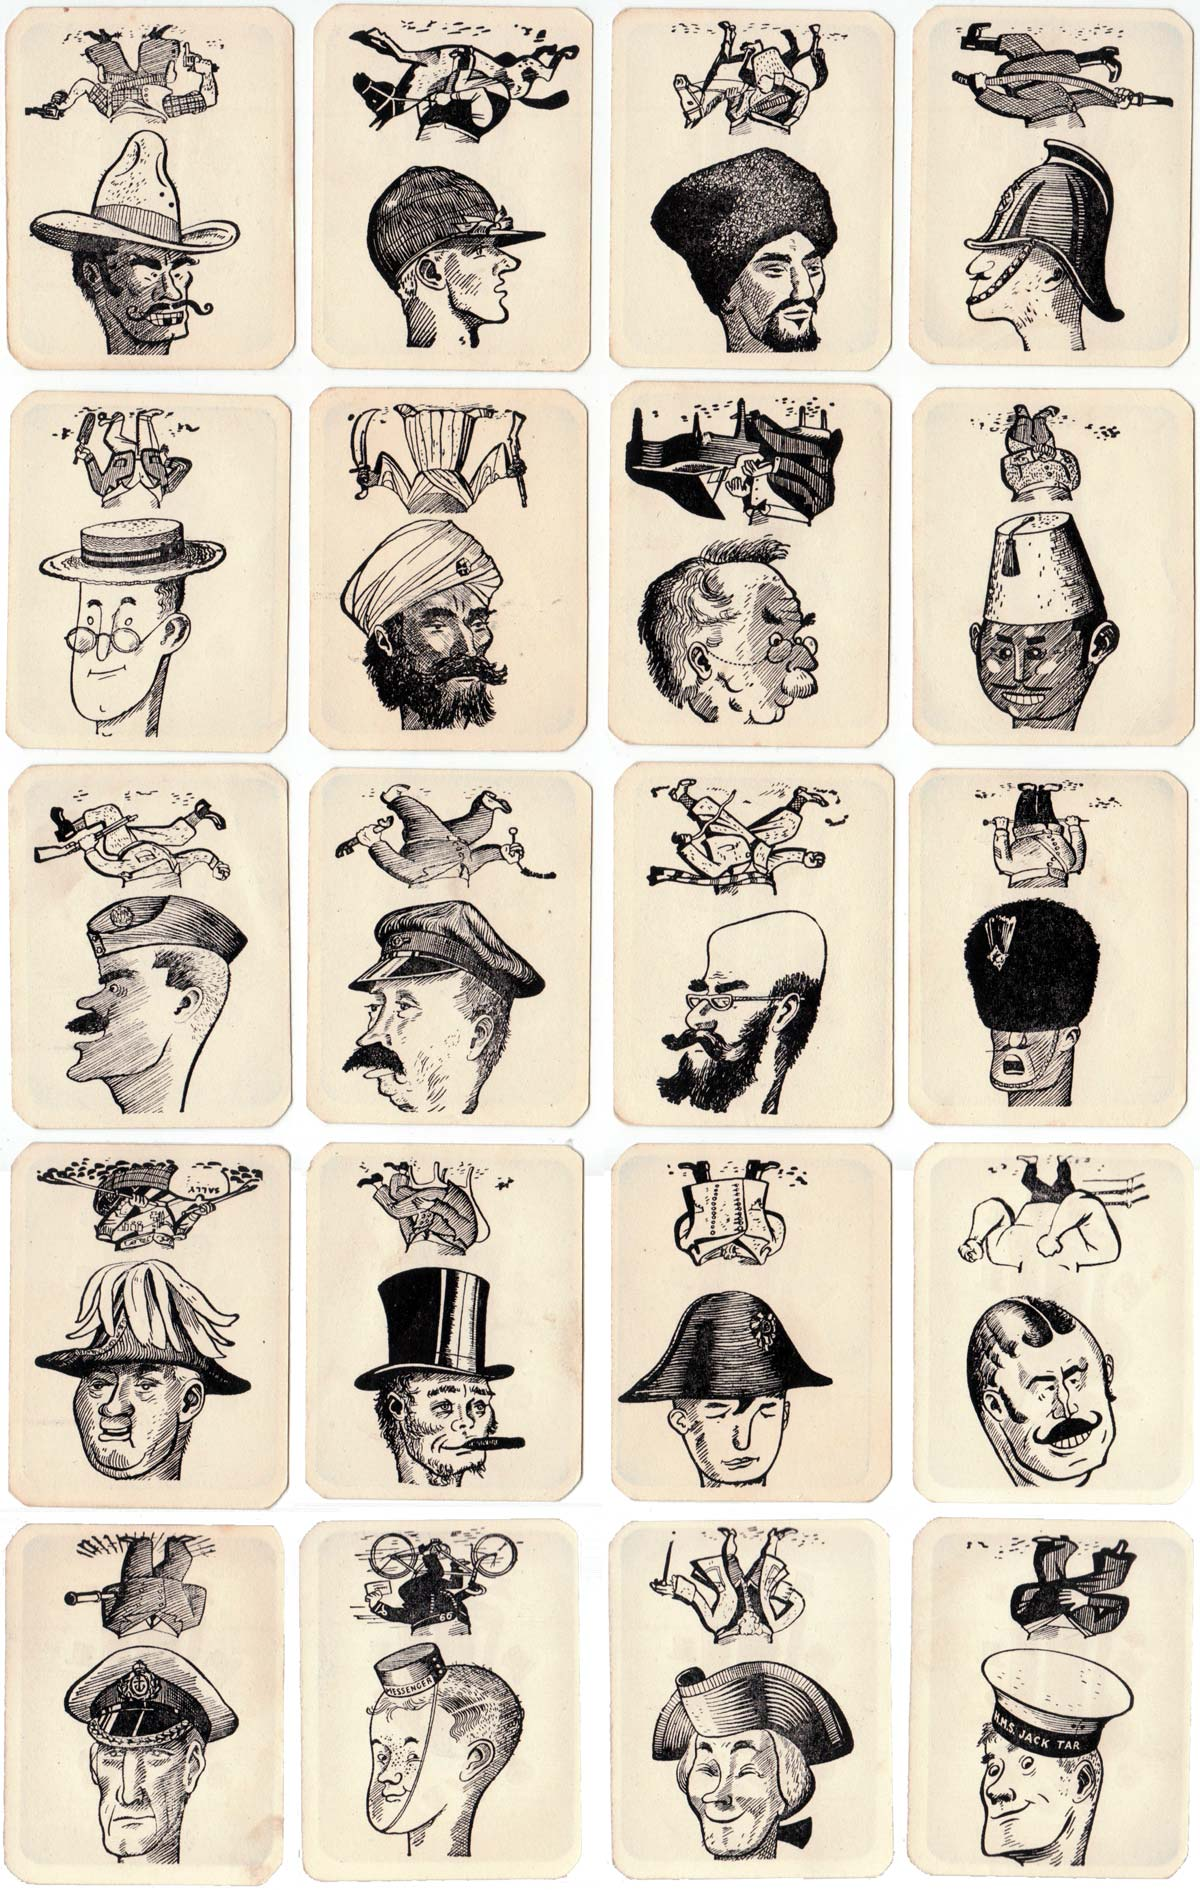 Hats-Off! published by E. S. & A. Robinson, c.1930s